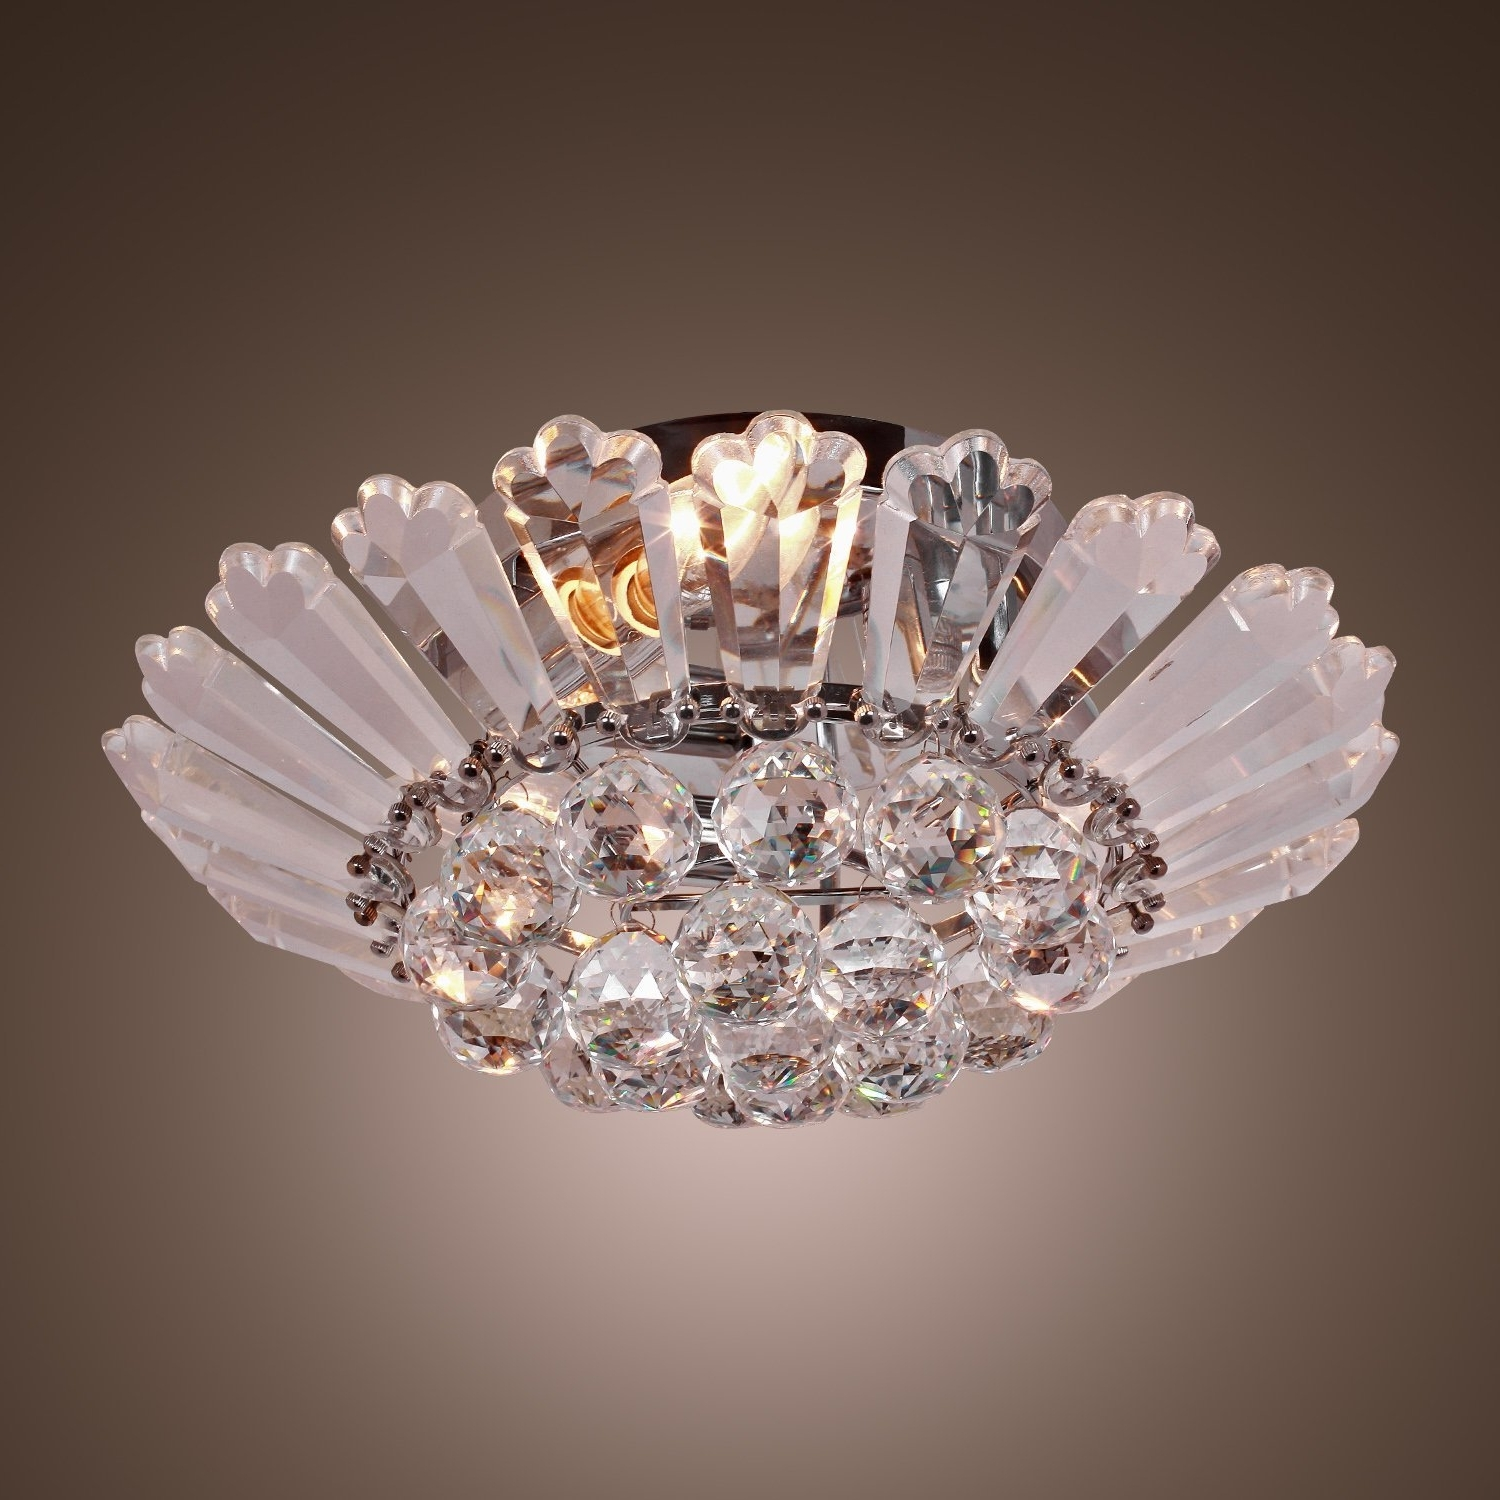 Fashionable Lightinthebox Modern Semi – Flush Mount In Crystal Feature, Home Intended For Flush Chandelier Ceiling Lights (View 3 of 15)